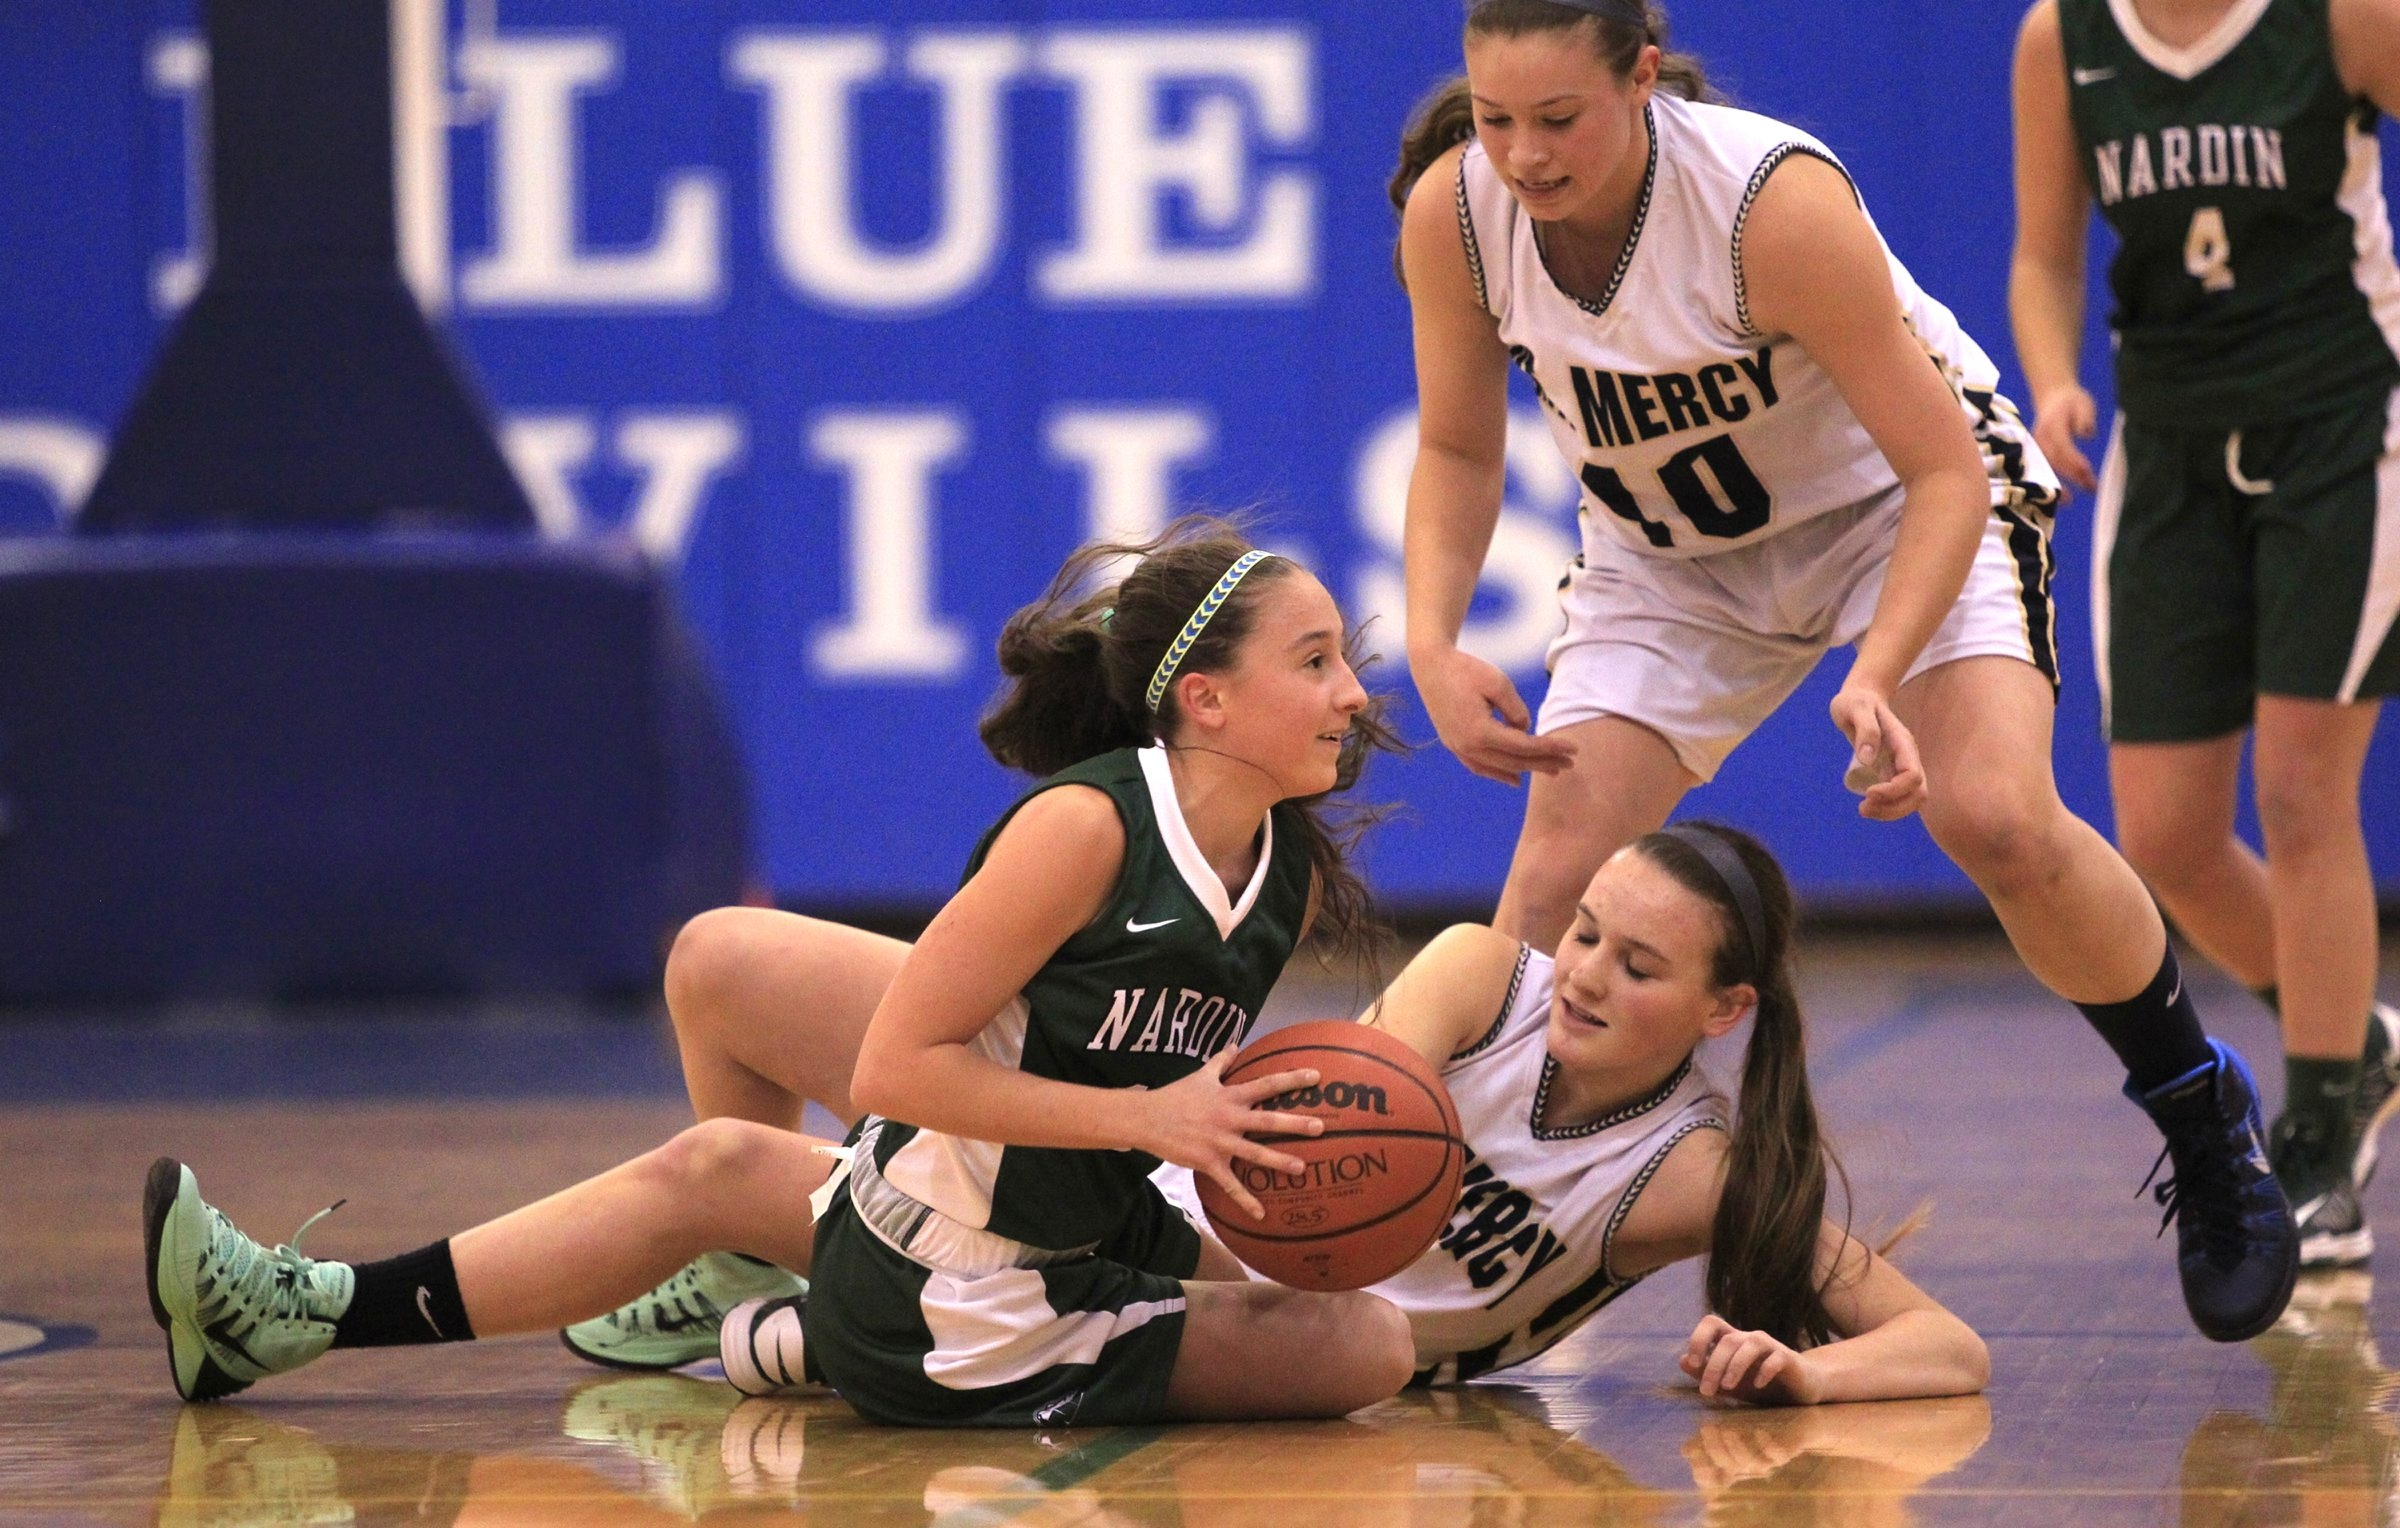 Nardin's Caroline Colpoys (13) fights for a loose ball against Mount Mercy's Emily Sheehan in the Matt Colpoys Tournament at Kenmore West High School Thursday.